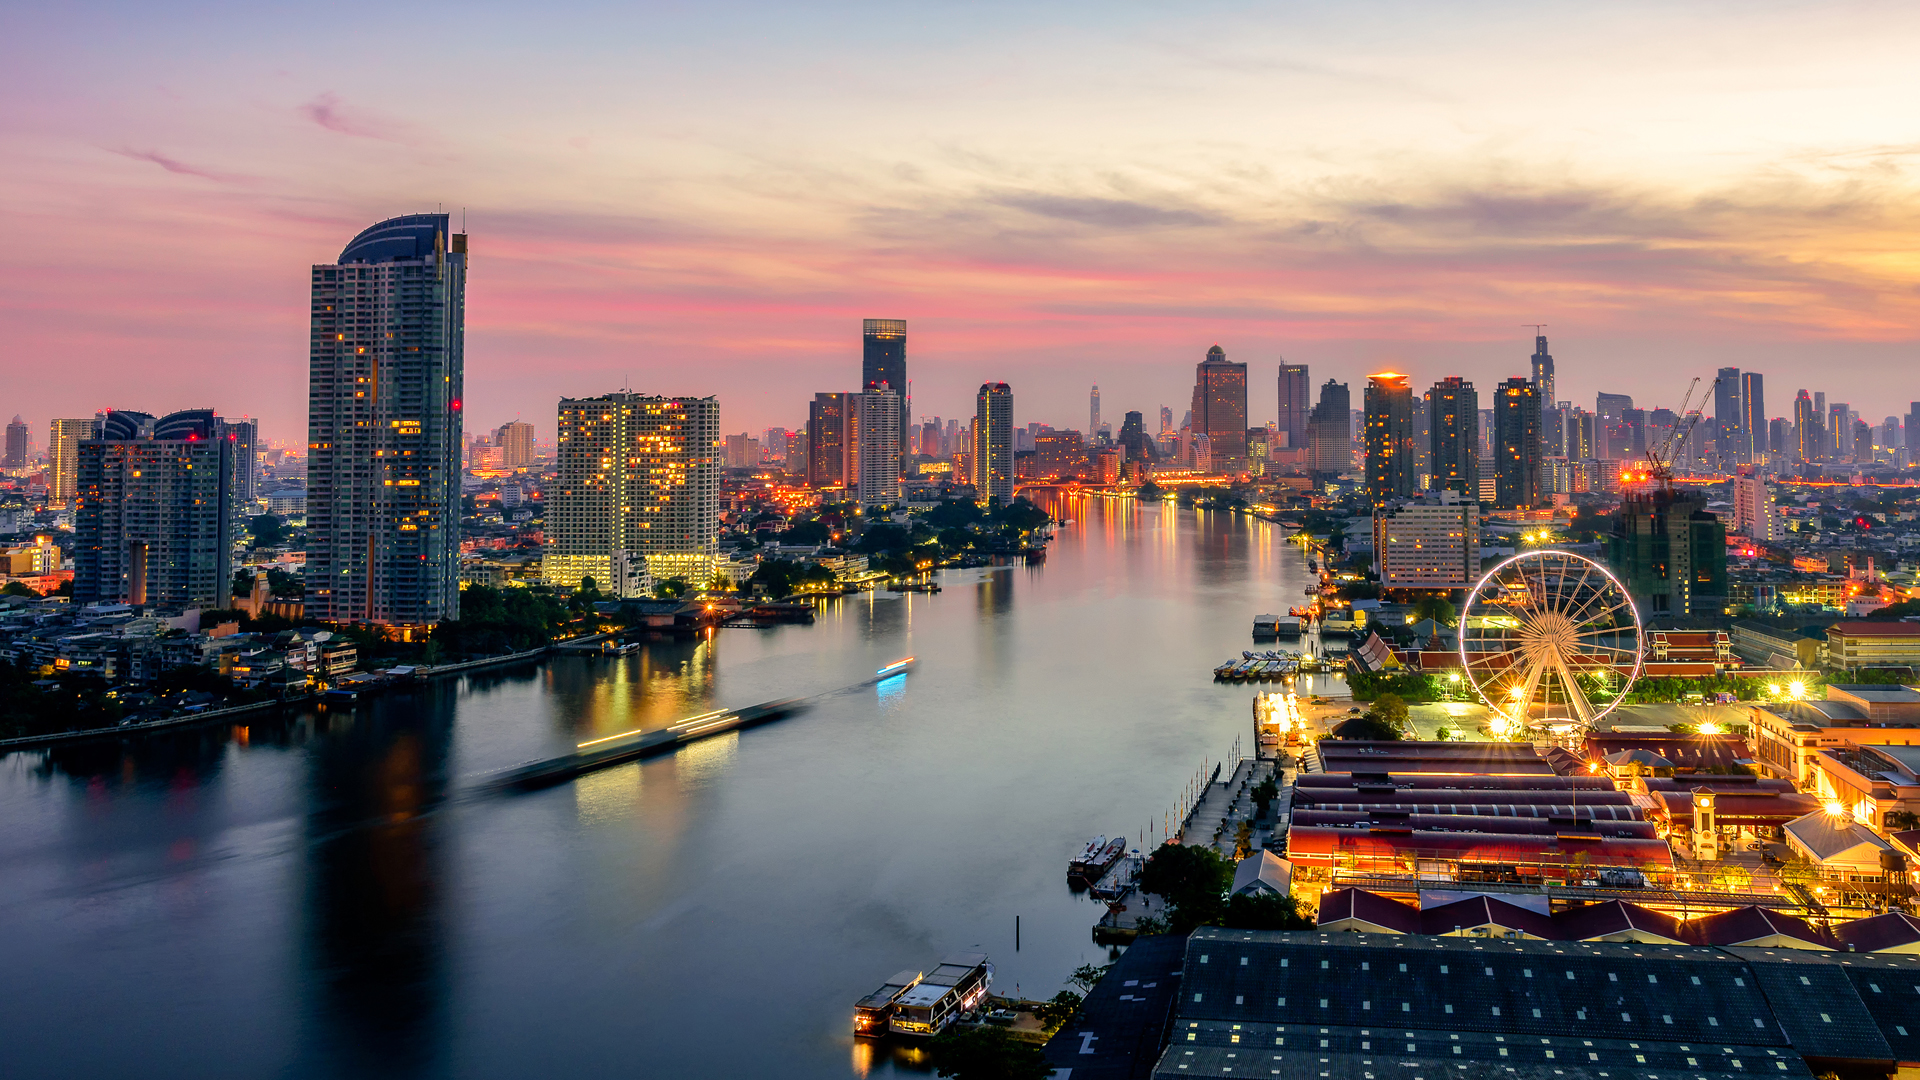 Cathay Associates Bangkok is the fifth member office in East Asia, further enhancing our ability to be a bridge between the East and West.